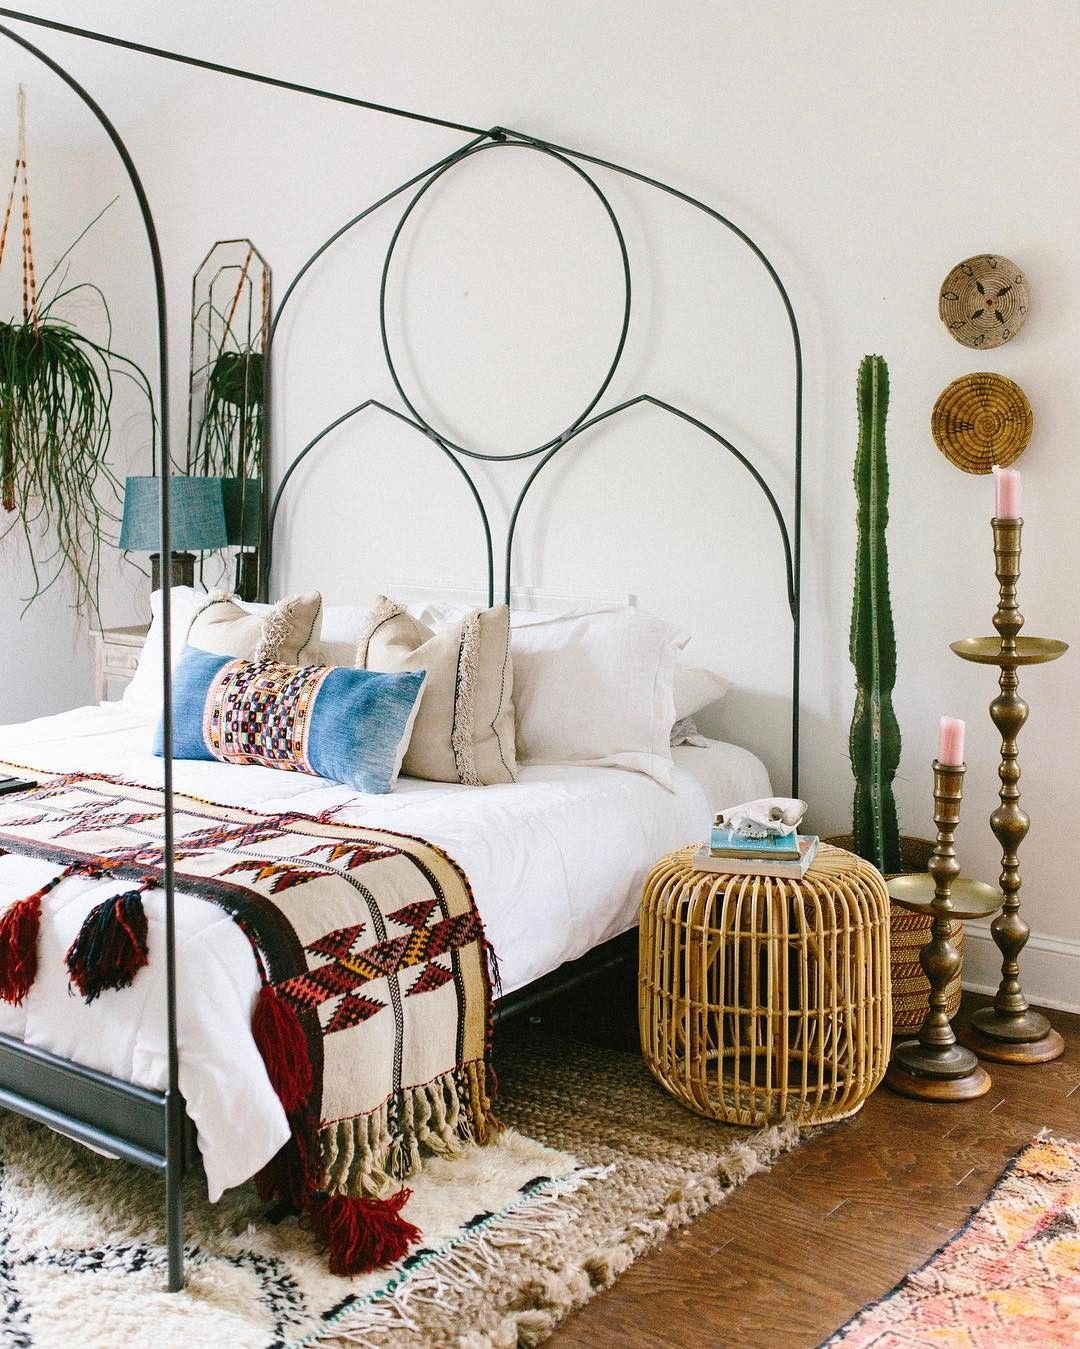 Boho Bed Frame Carley Summers Carlaypage Instagram Photos And Videos